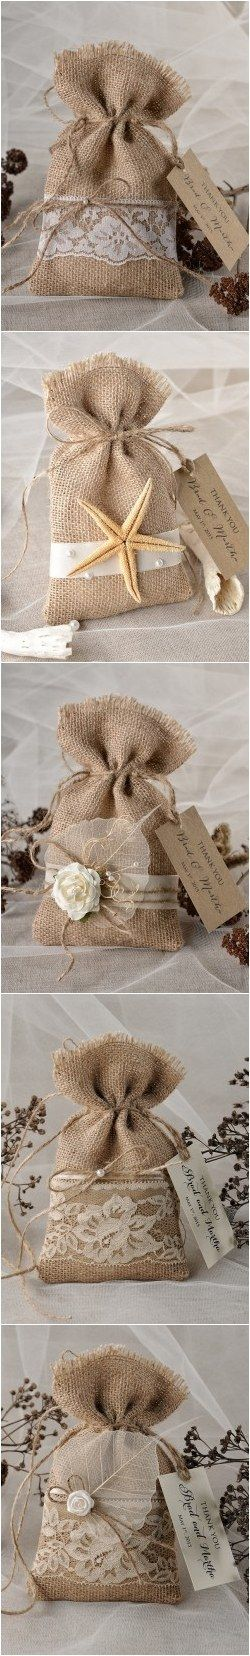 Rustic country burlap wedding favors bags #rusticwedding #countrywedding